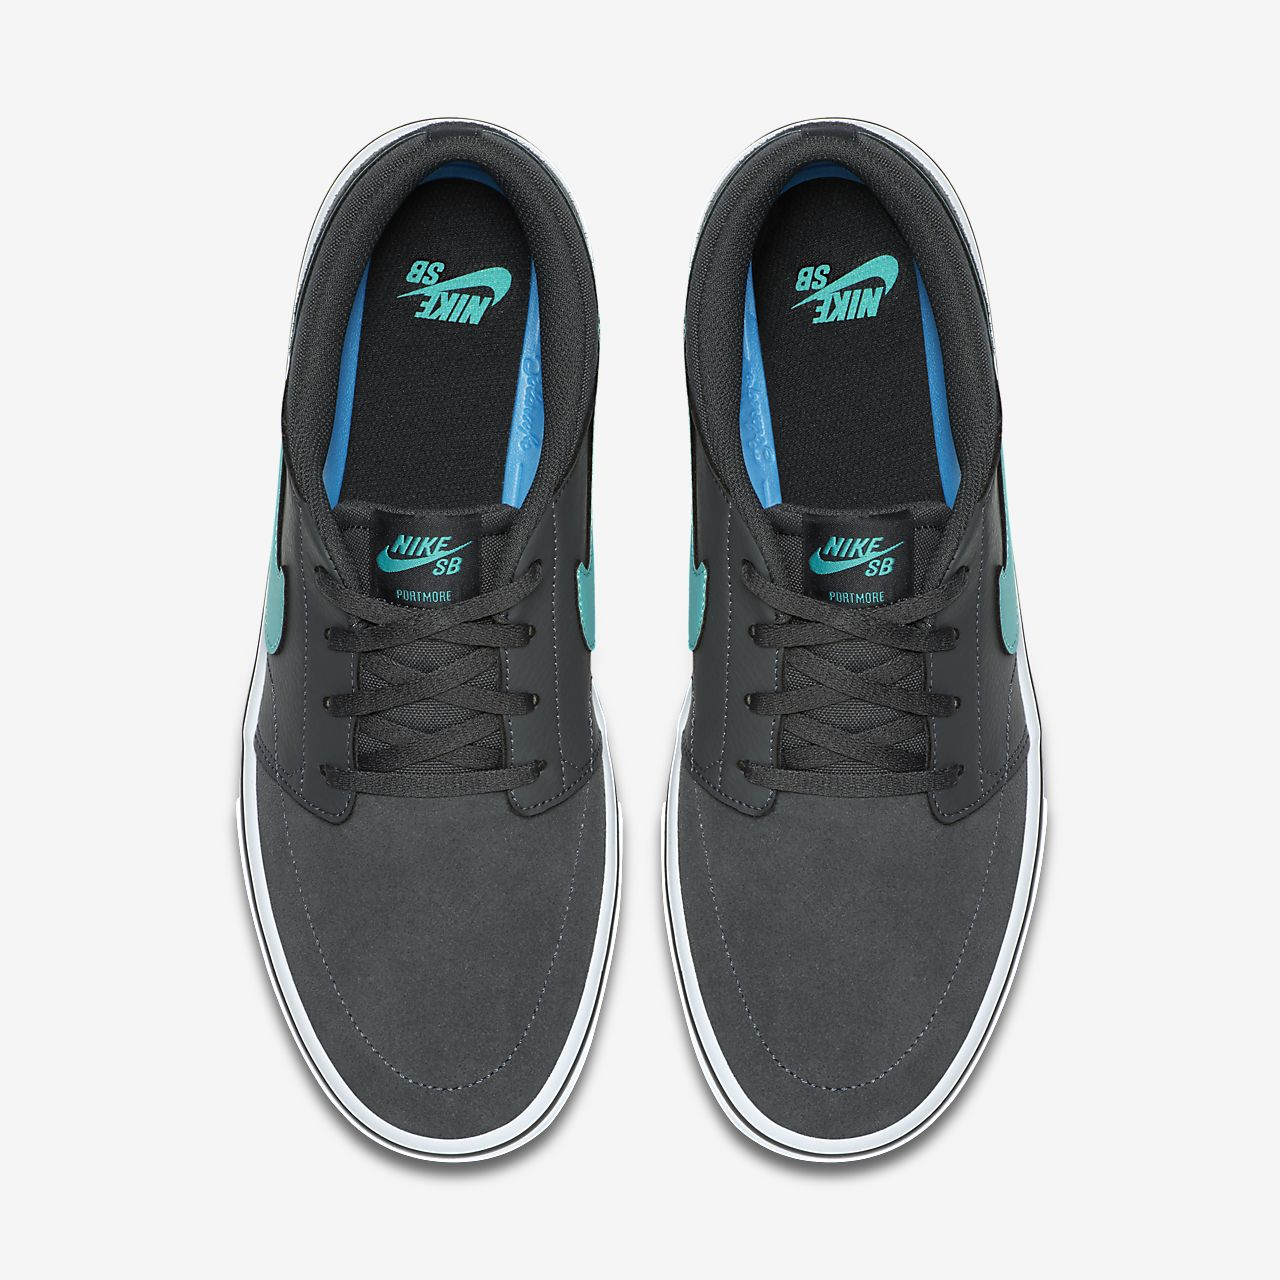 brand new 7844d 2d110 ... Chaussure de skateboard Nike SB Solarsoft Portmore II pour Homme